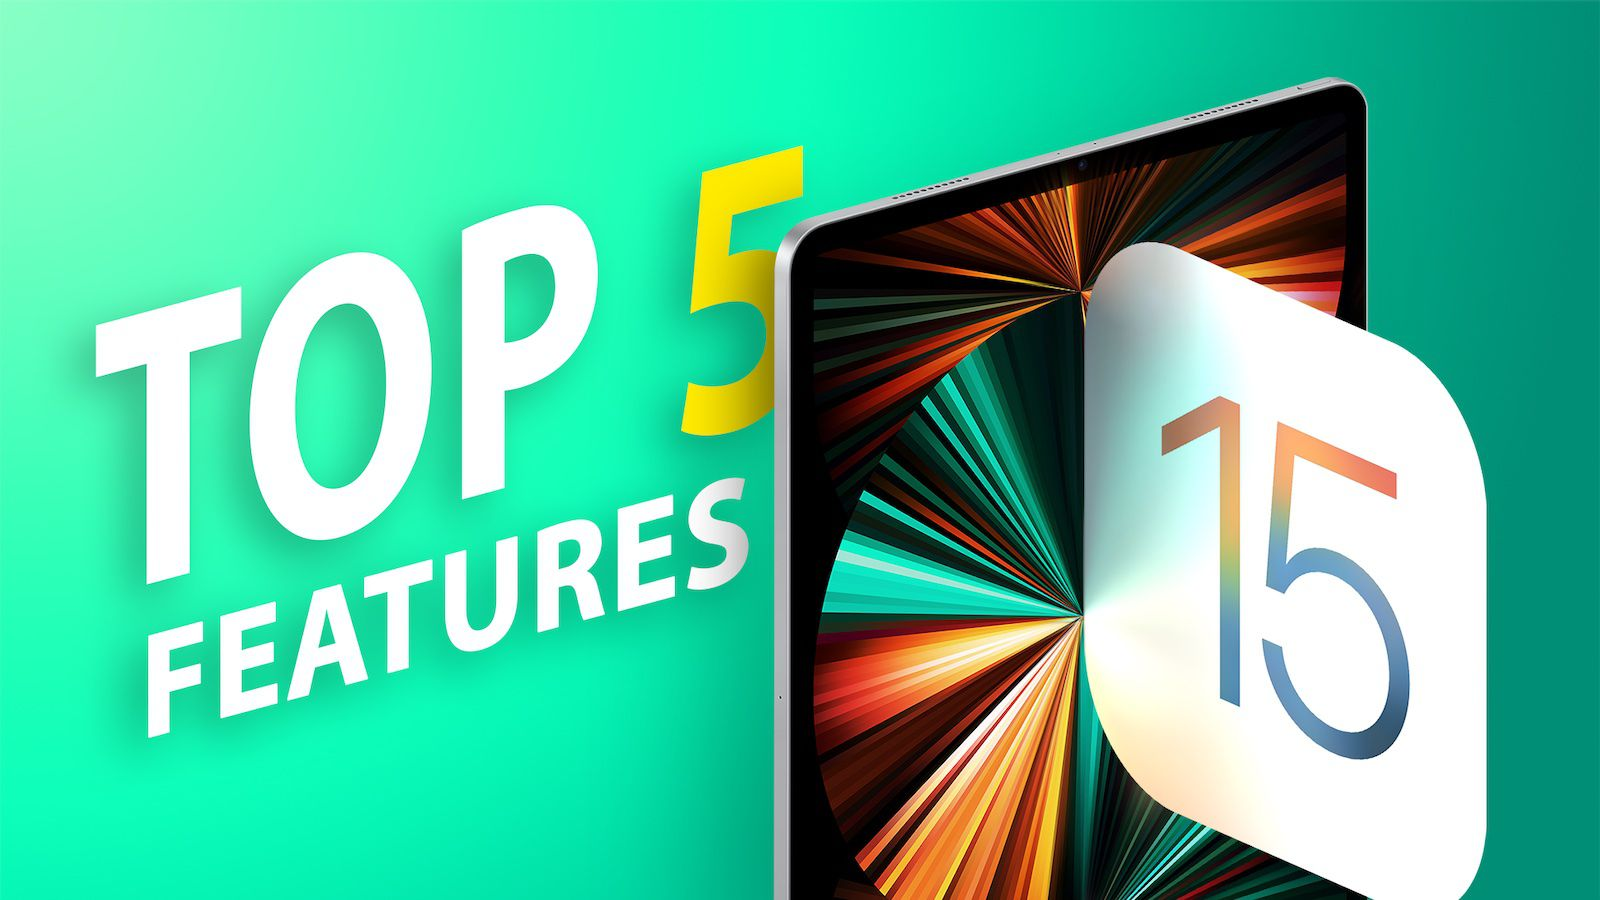 photo of Video: Top 5 Most Useful Features in iPadOS 15 image